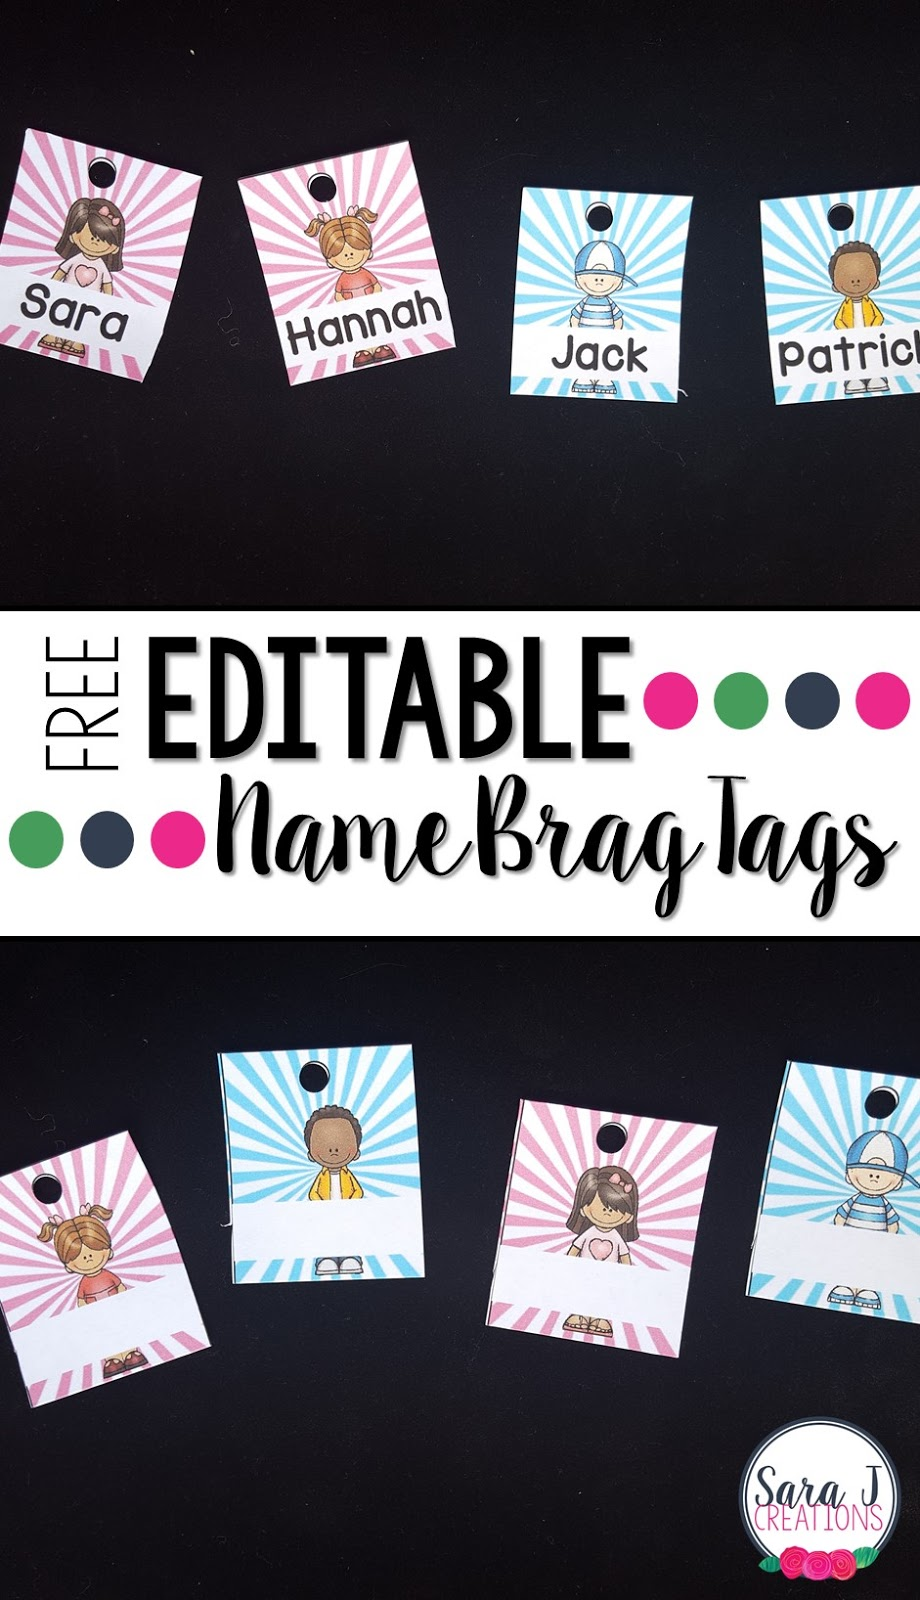 Such a cute way to start the year in your classroom with brag tags. This freebie includes editable brag tags in 12 different styles to be used as a nametag for the first tag on your students' necklaces.